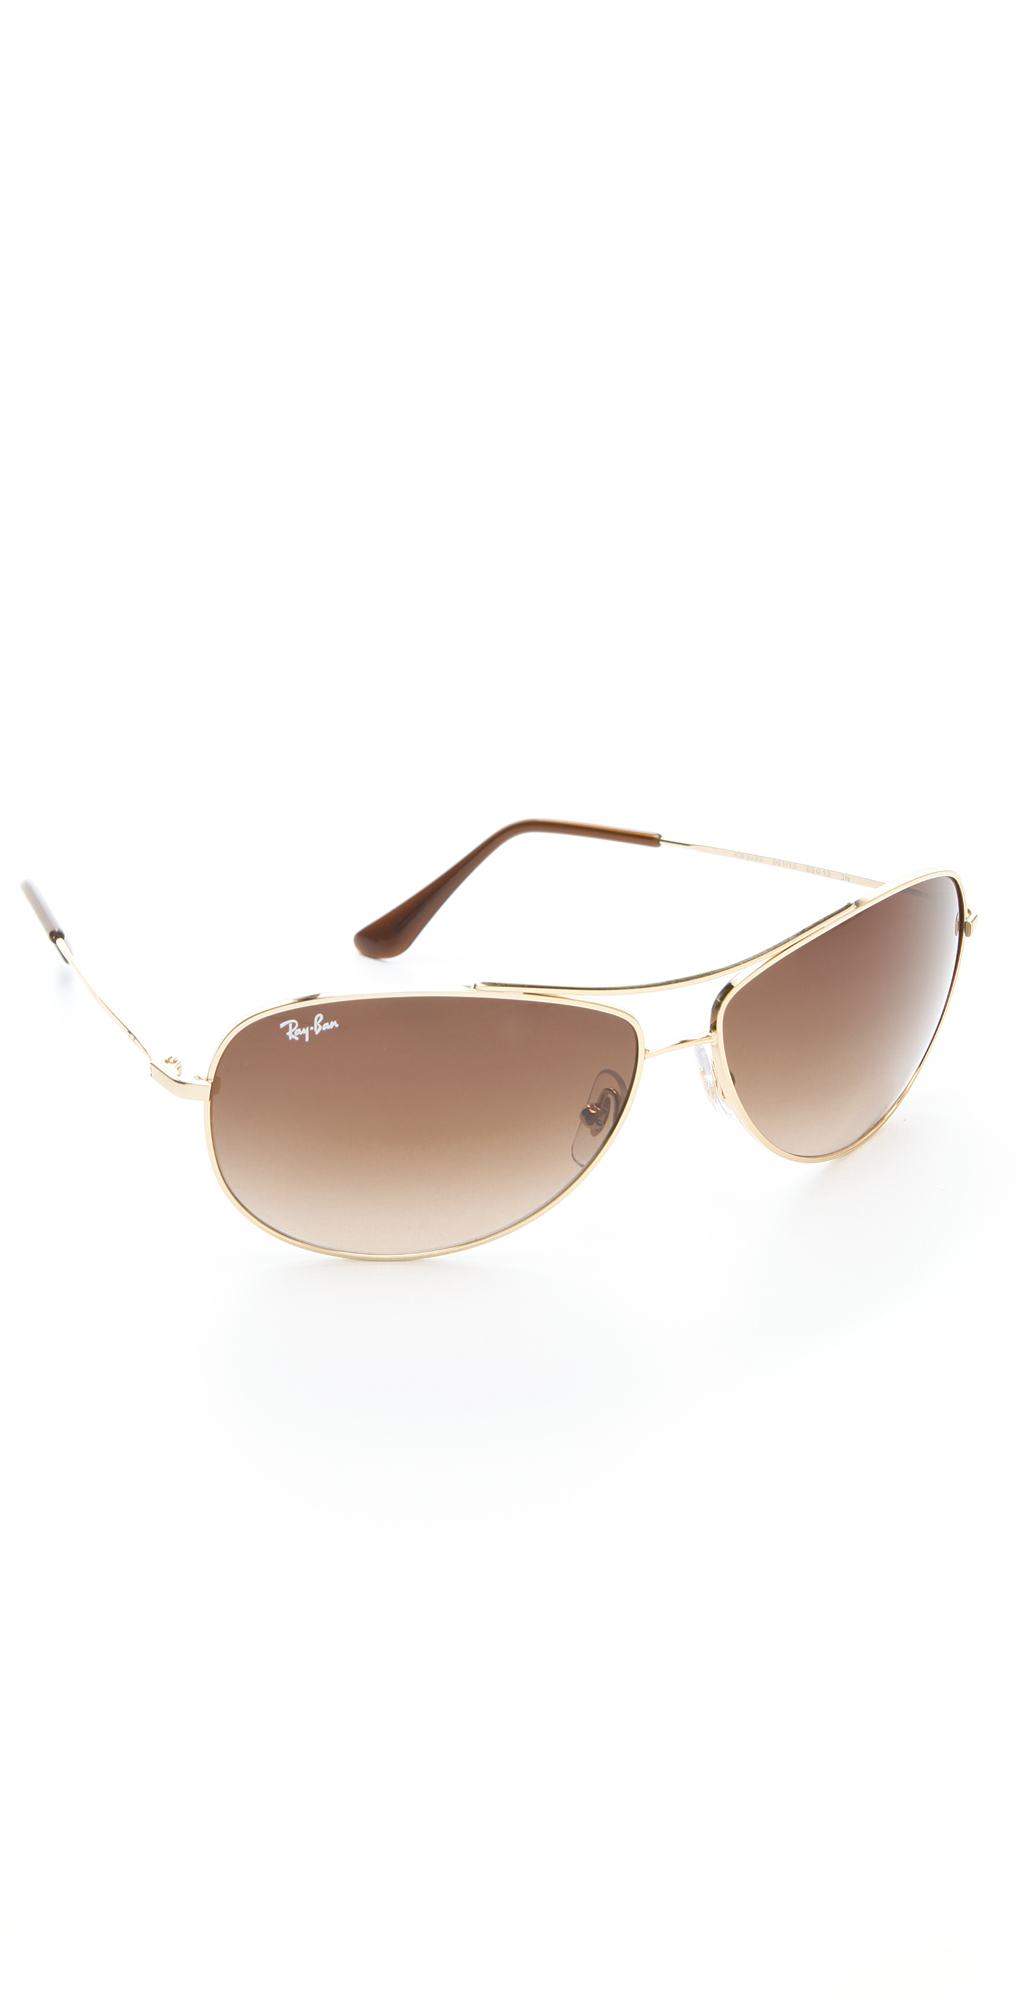 cbf74b1087 Ray Ban Aviator Wrap Around Sunglasses